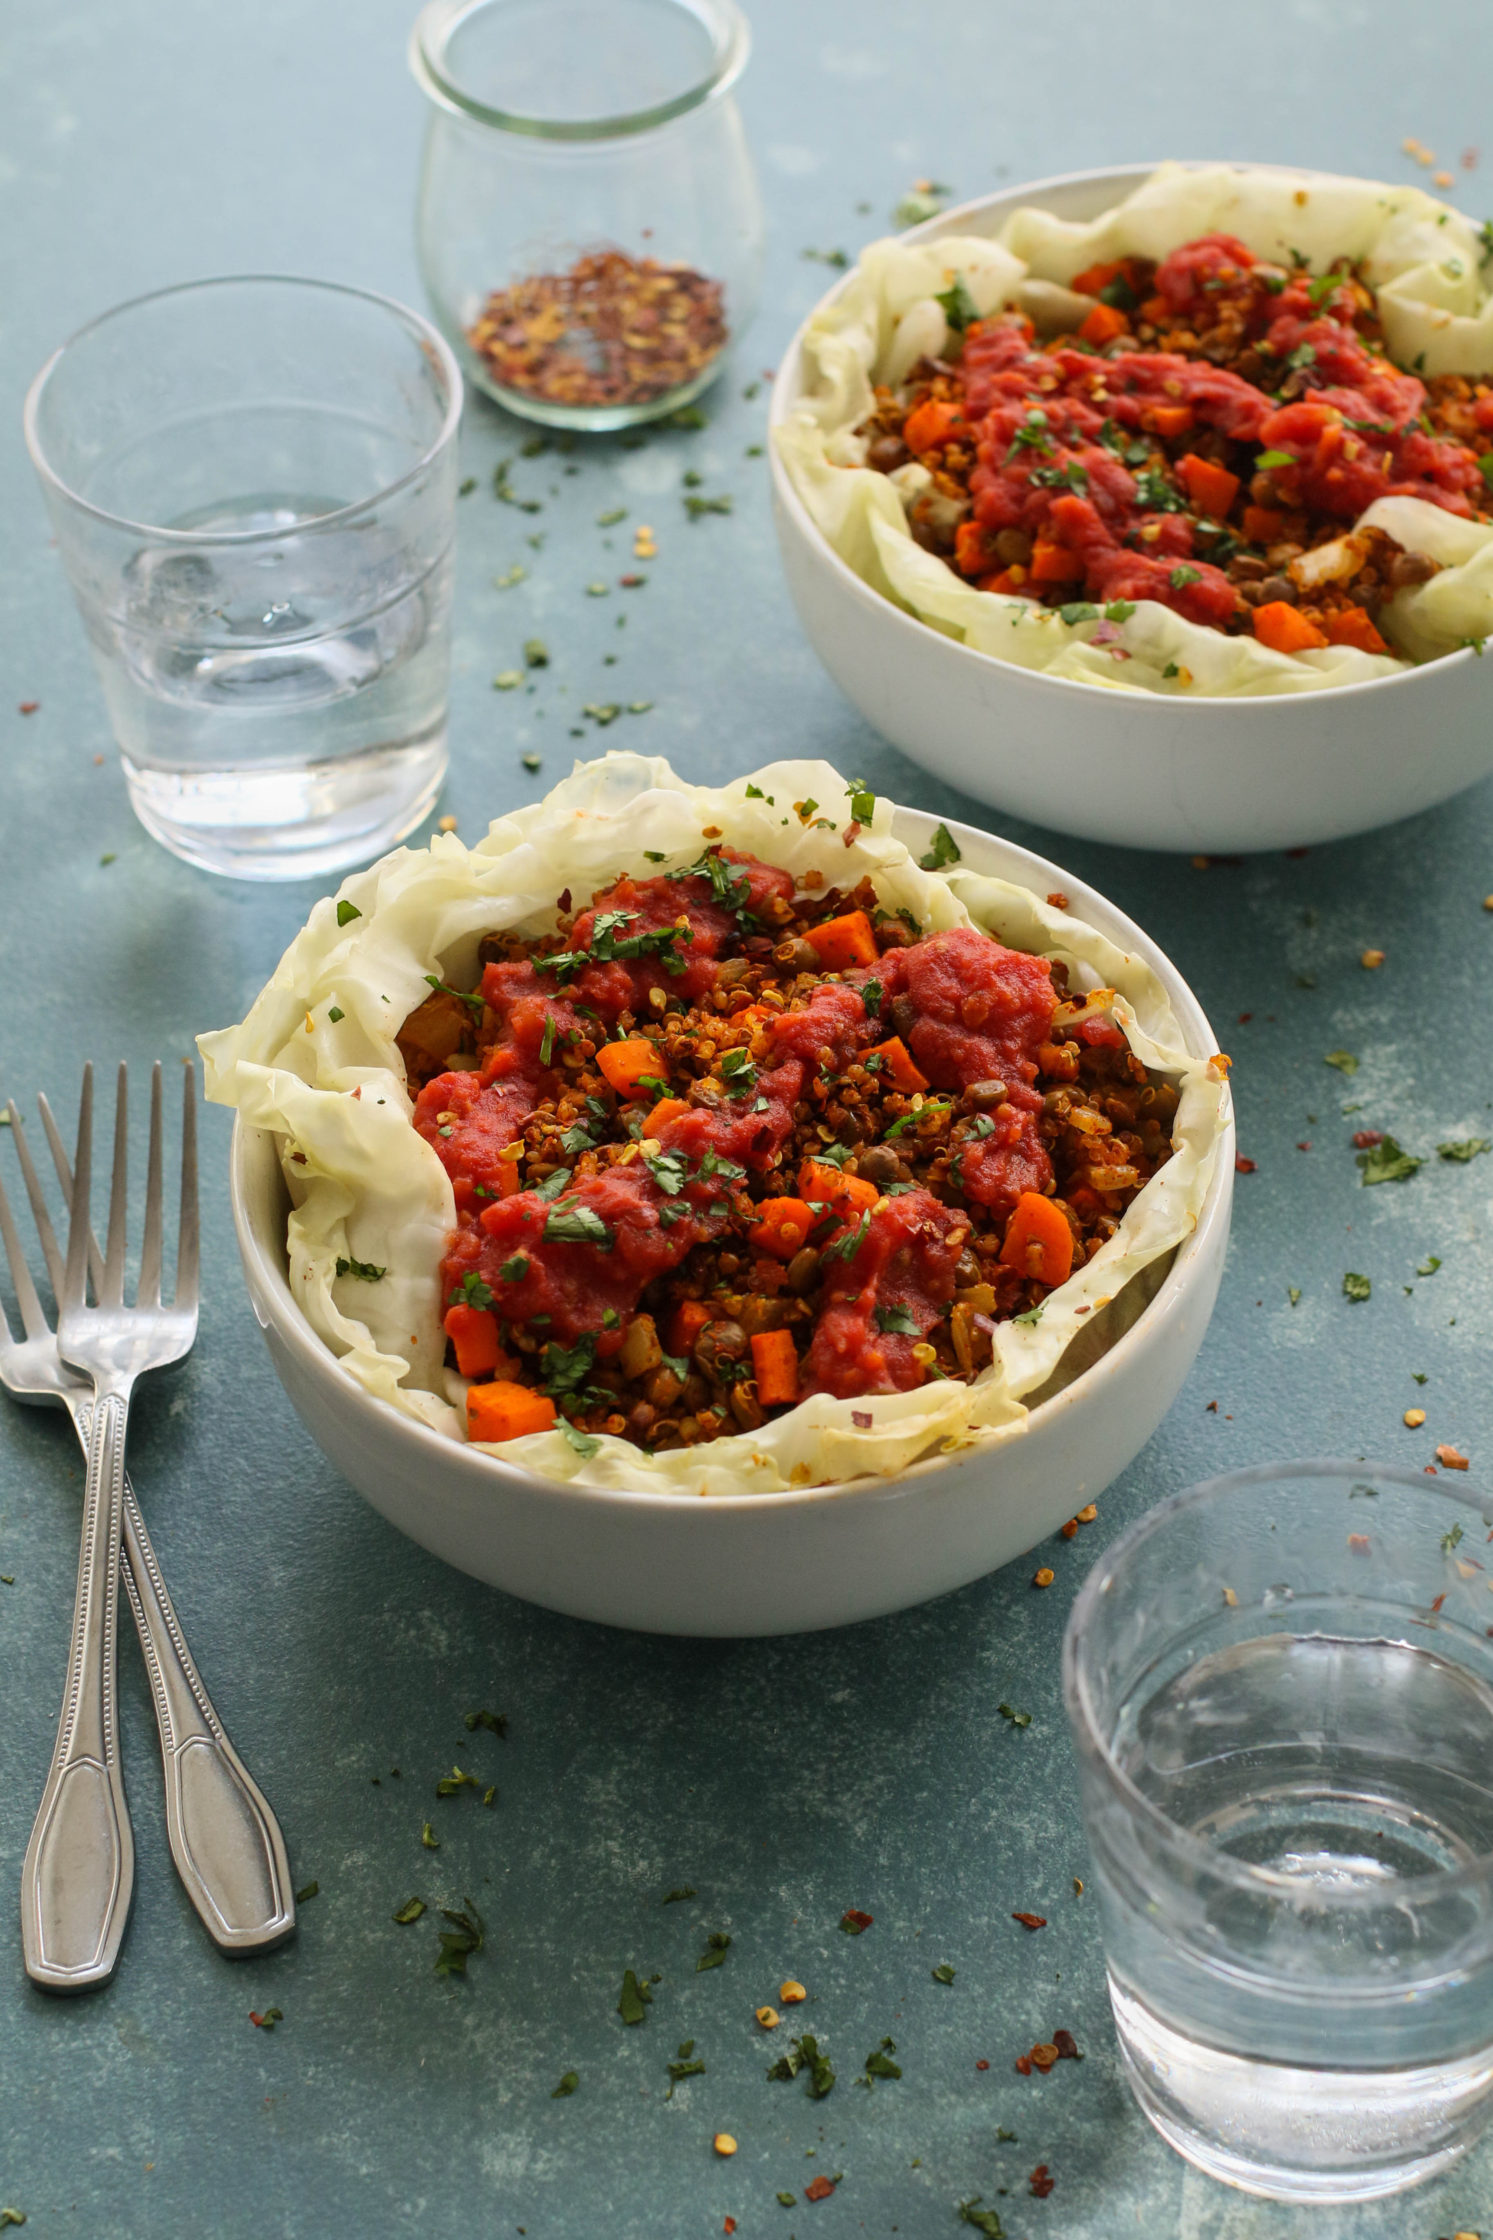 Spicy Marinara Stuffed Cabbage Bowls by Flora & Vino